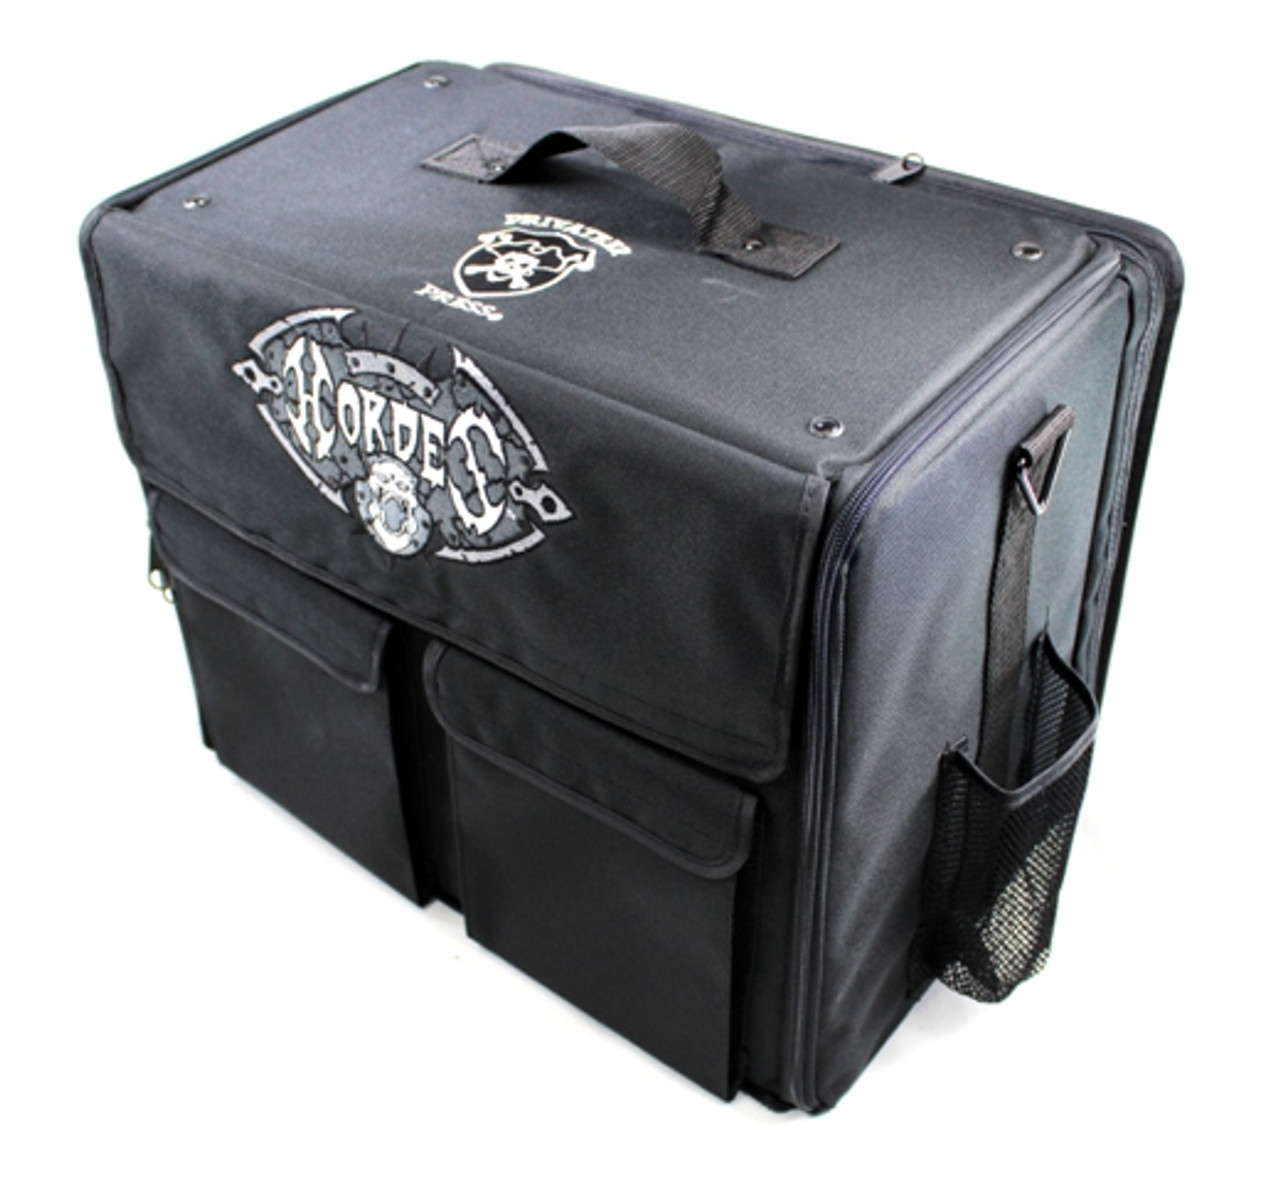 Hordes Privateer Press Hordes Bag Pluck Foam Load Out Black Battle Foam Star wars destiny bag kits. battle foam